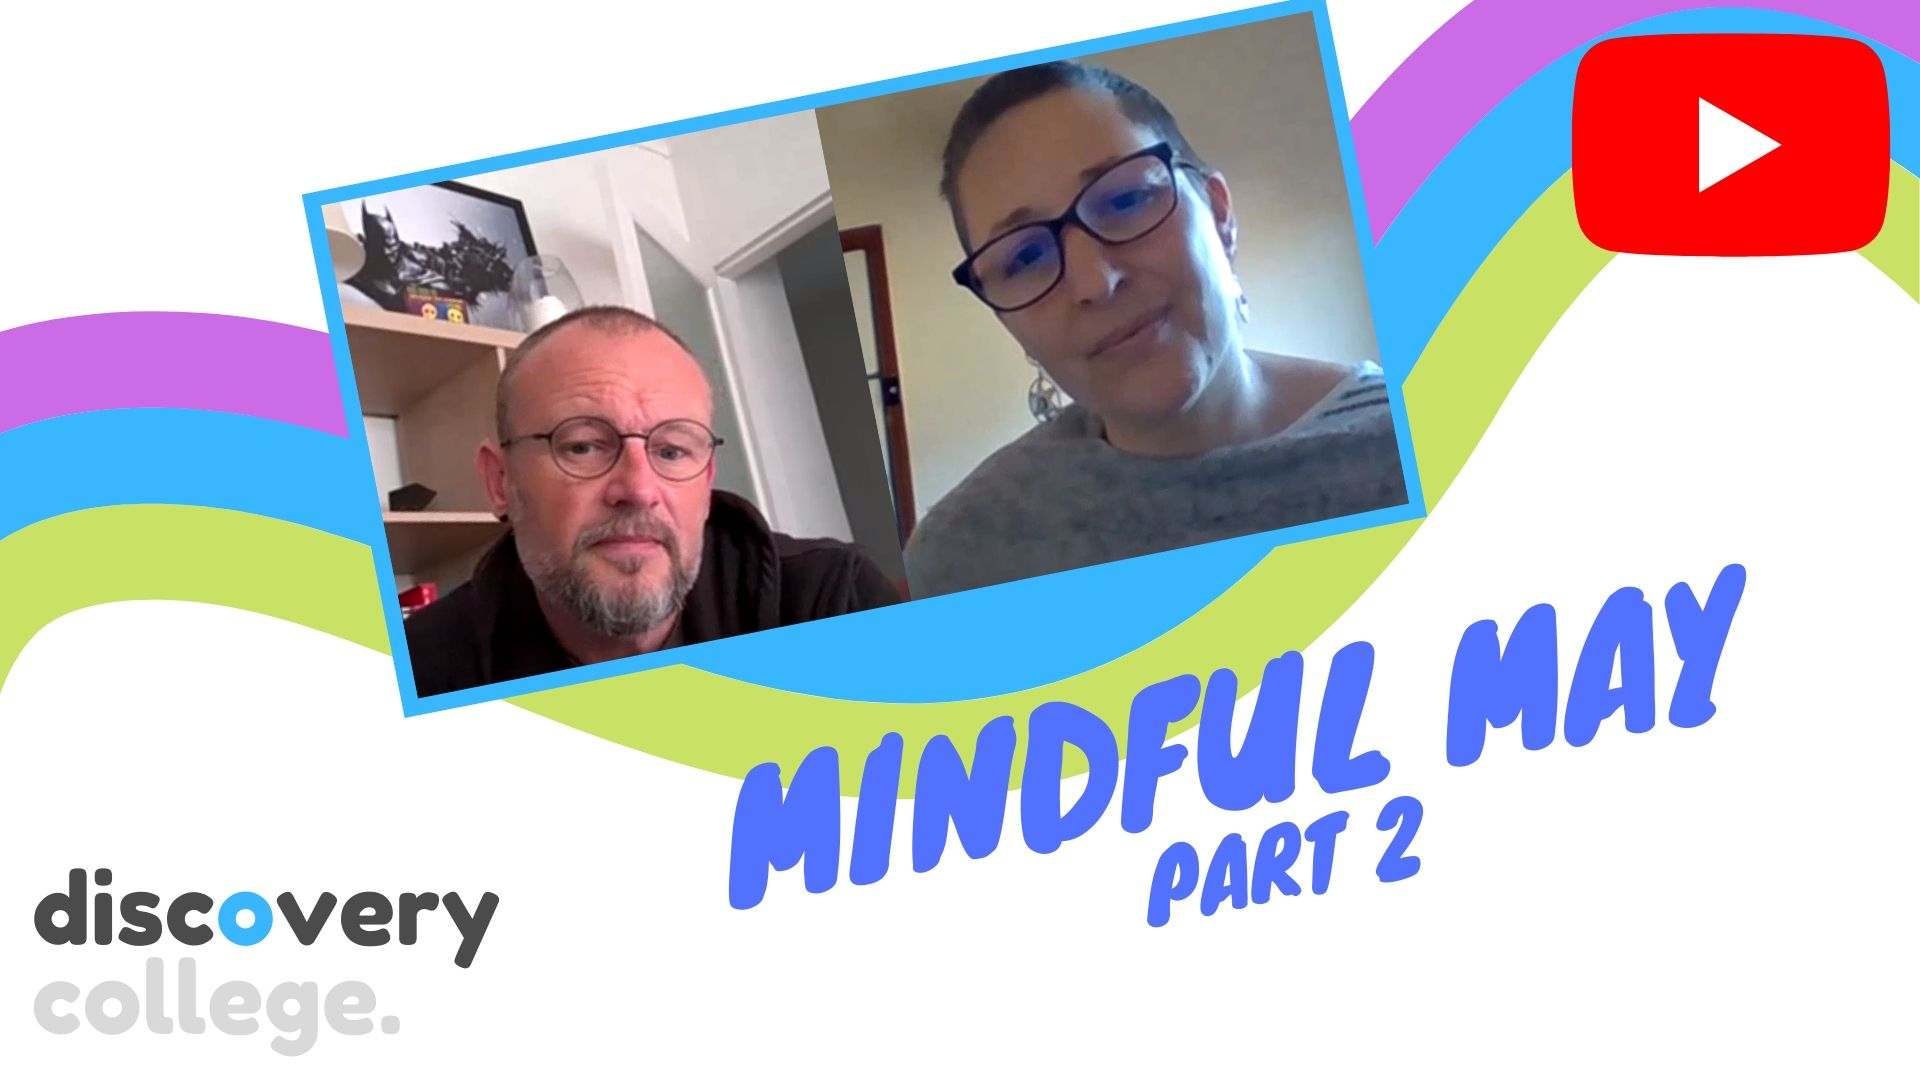 This discovery convo is part two for Mindful May